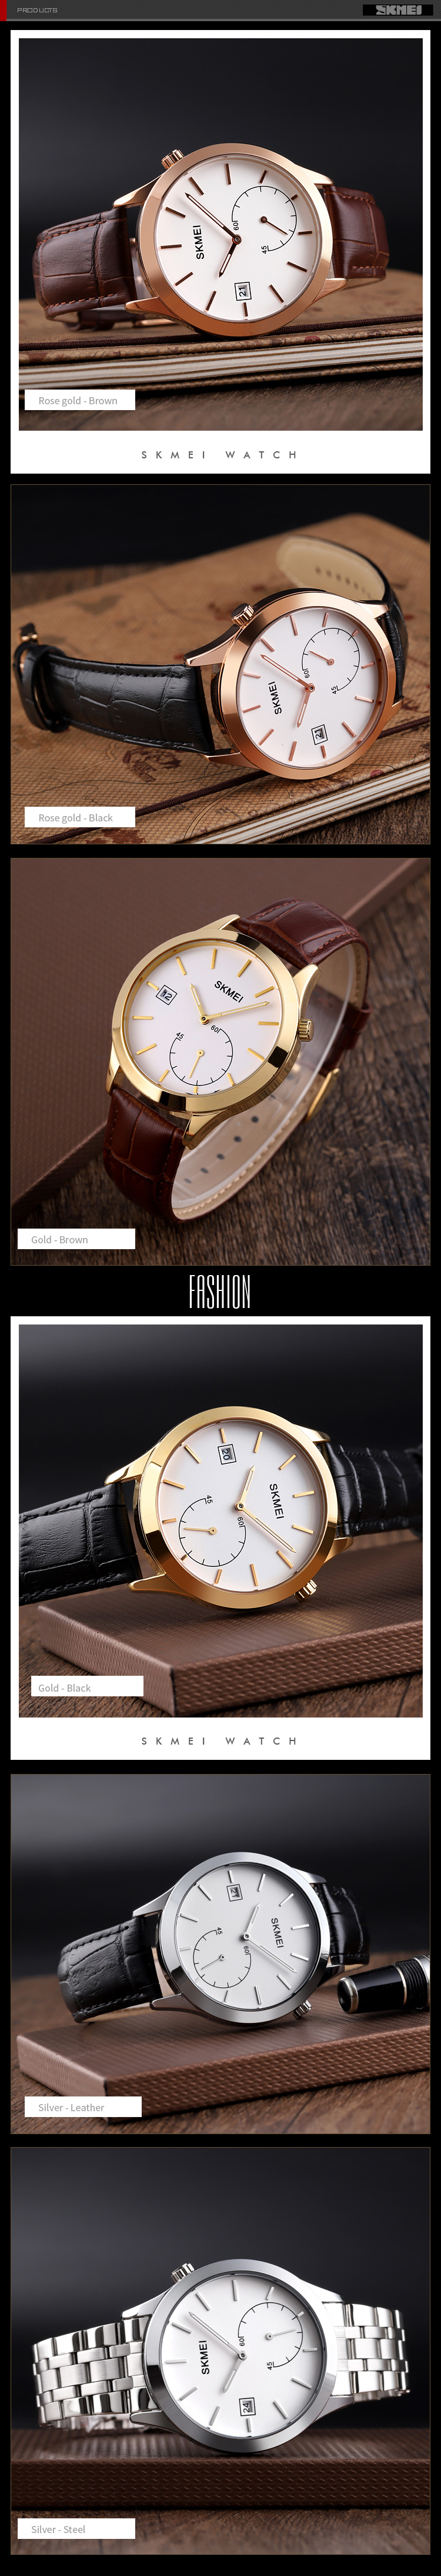 Hd8237fa4b2694b8d9ac960314c587c370 Business Simple Mens Quartz Watch SKMEI Brand